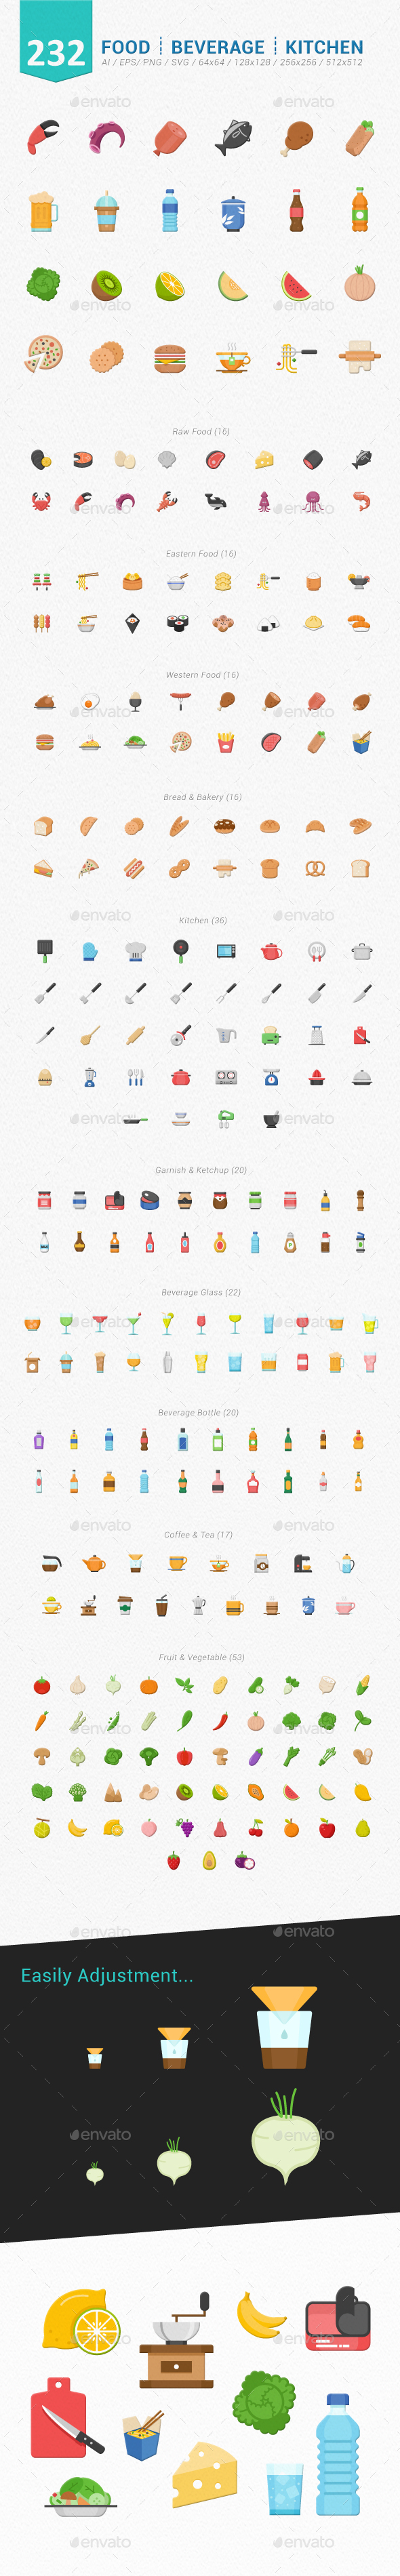 232Food Beverage Kitchen Color Icons - Food Objects